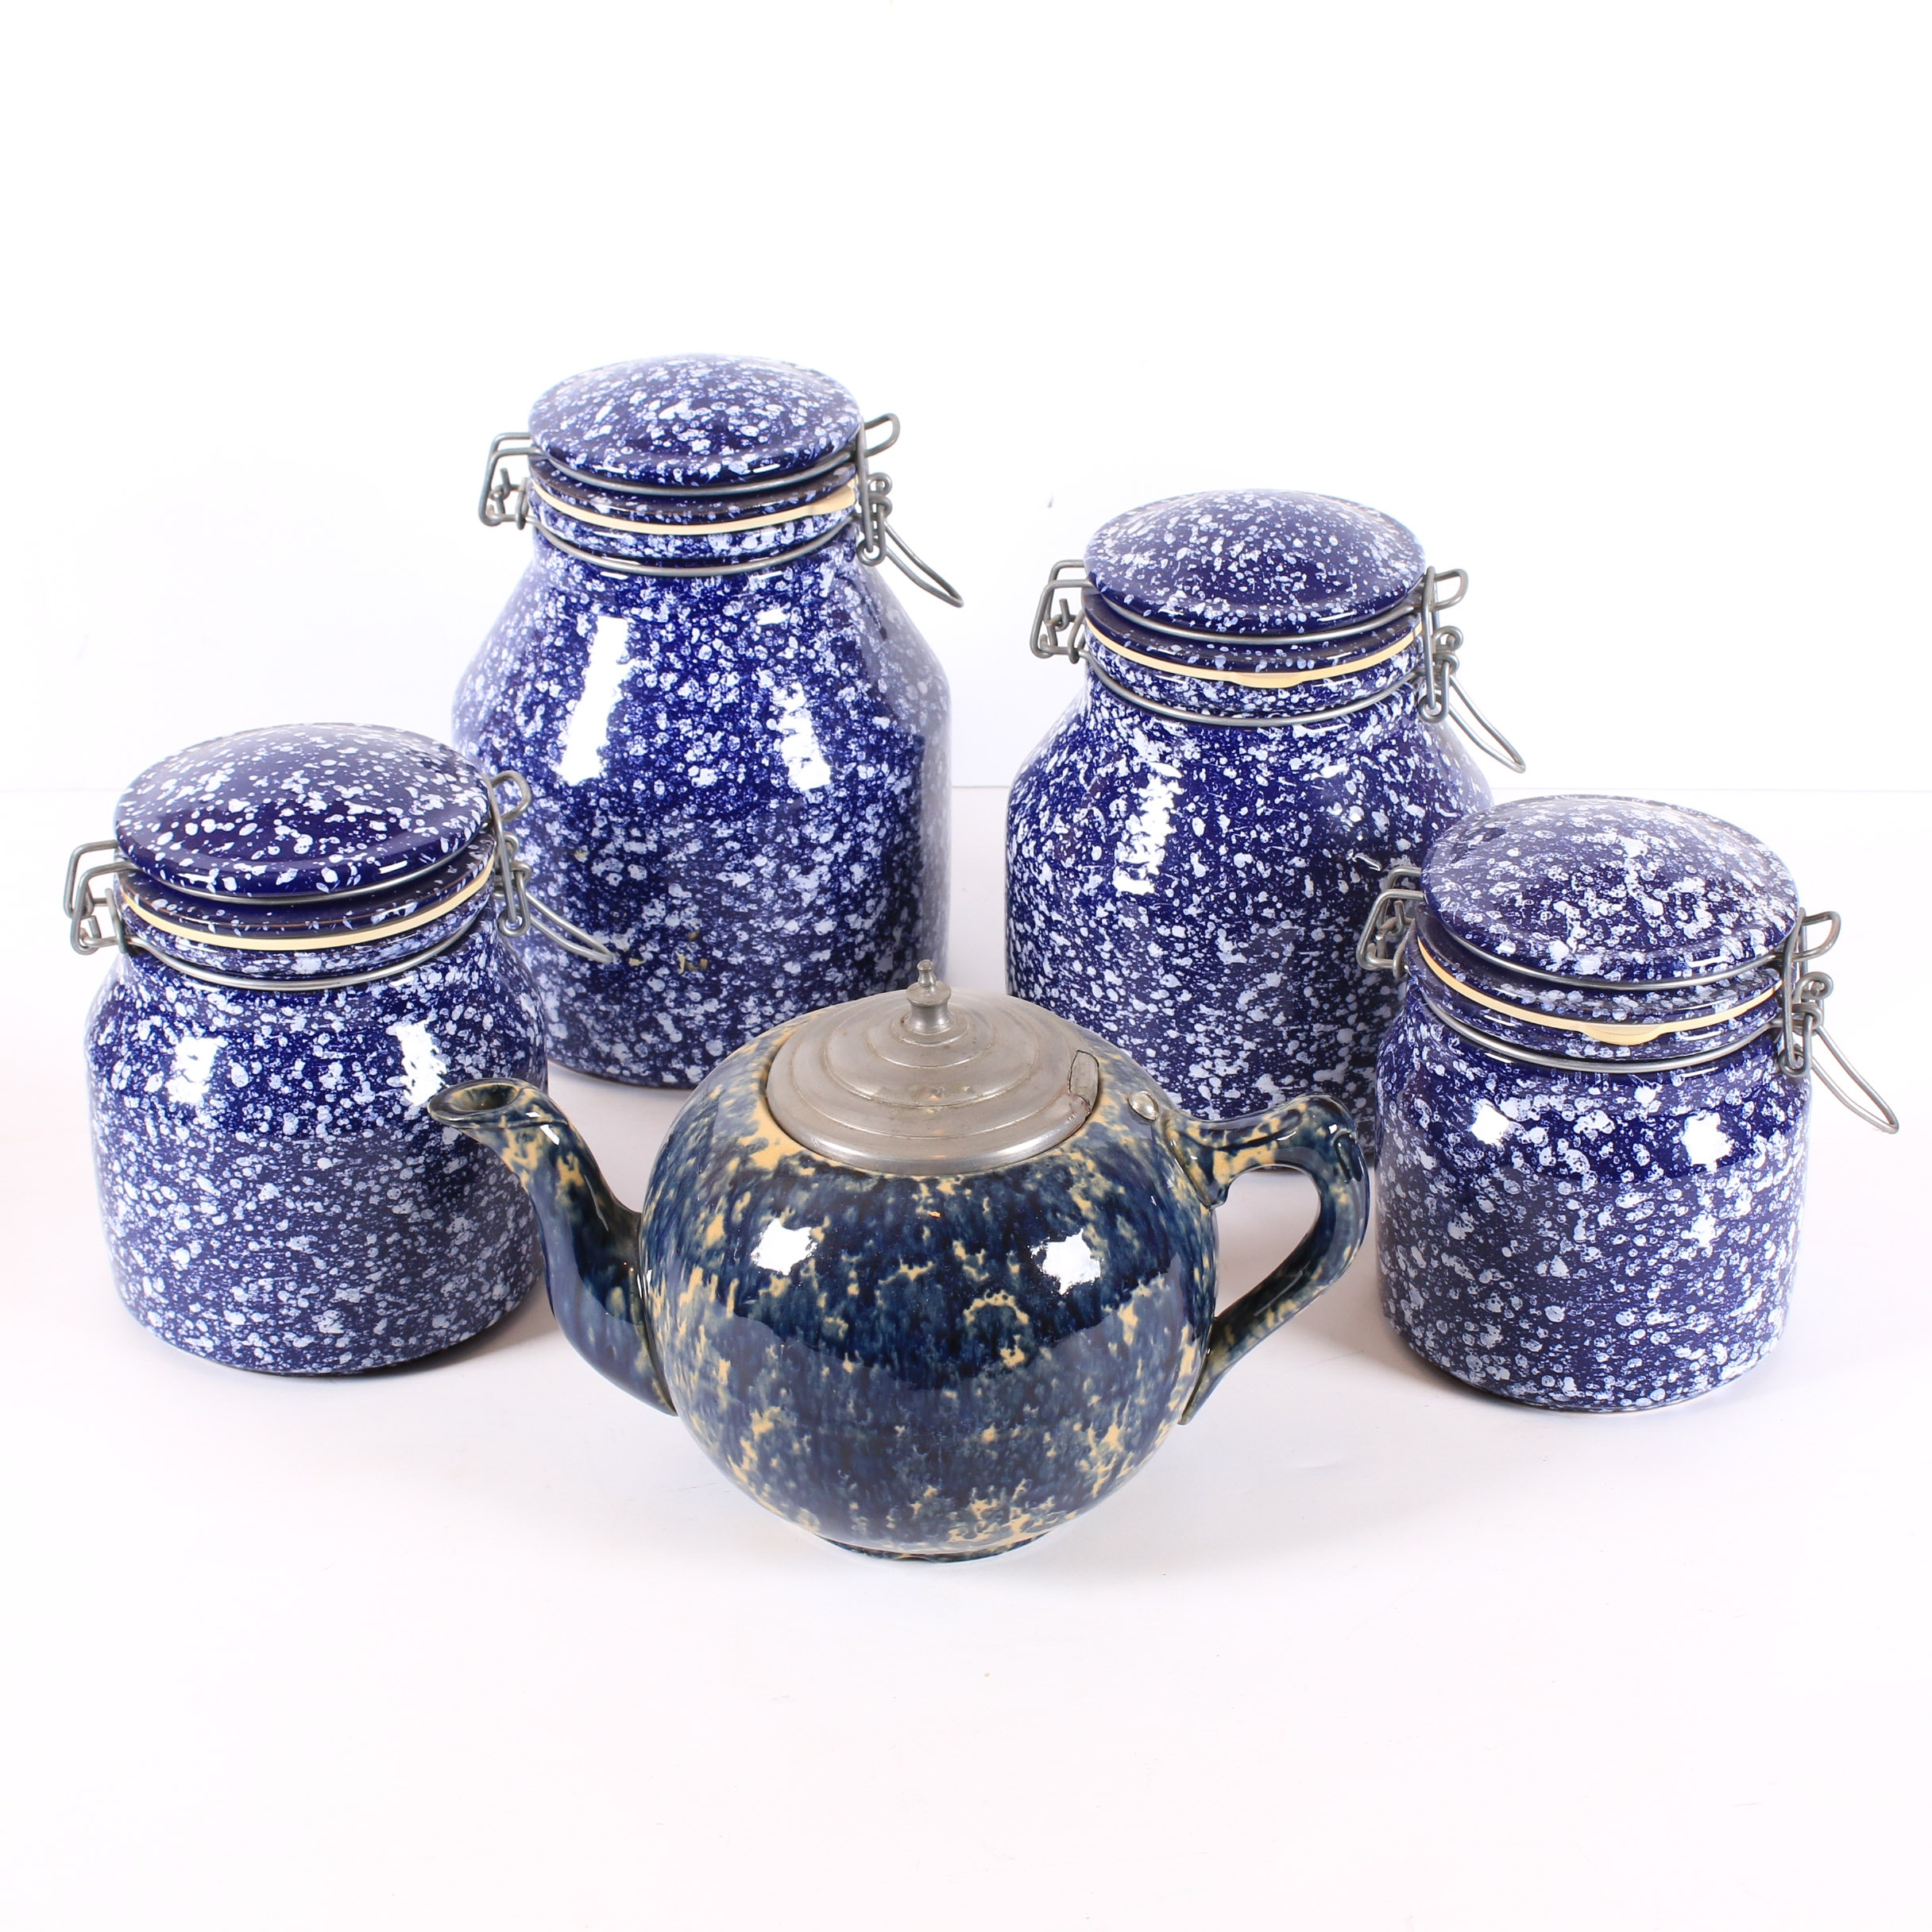 Ceramic Spongeware Canisters and Teapot